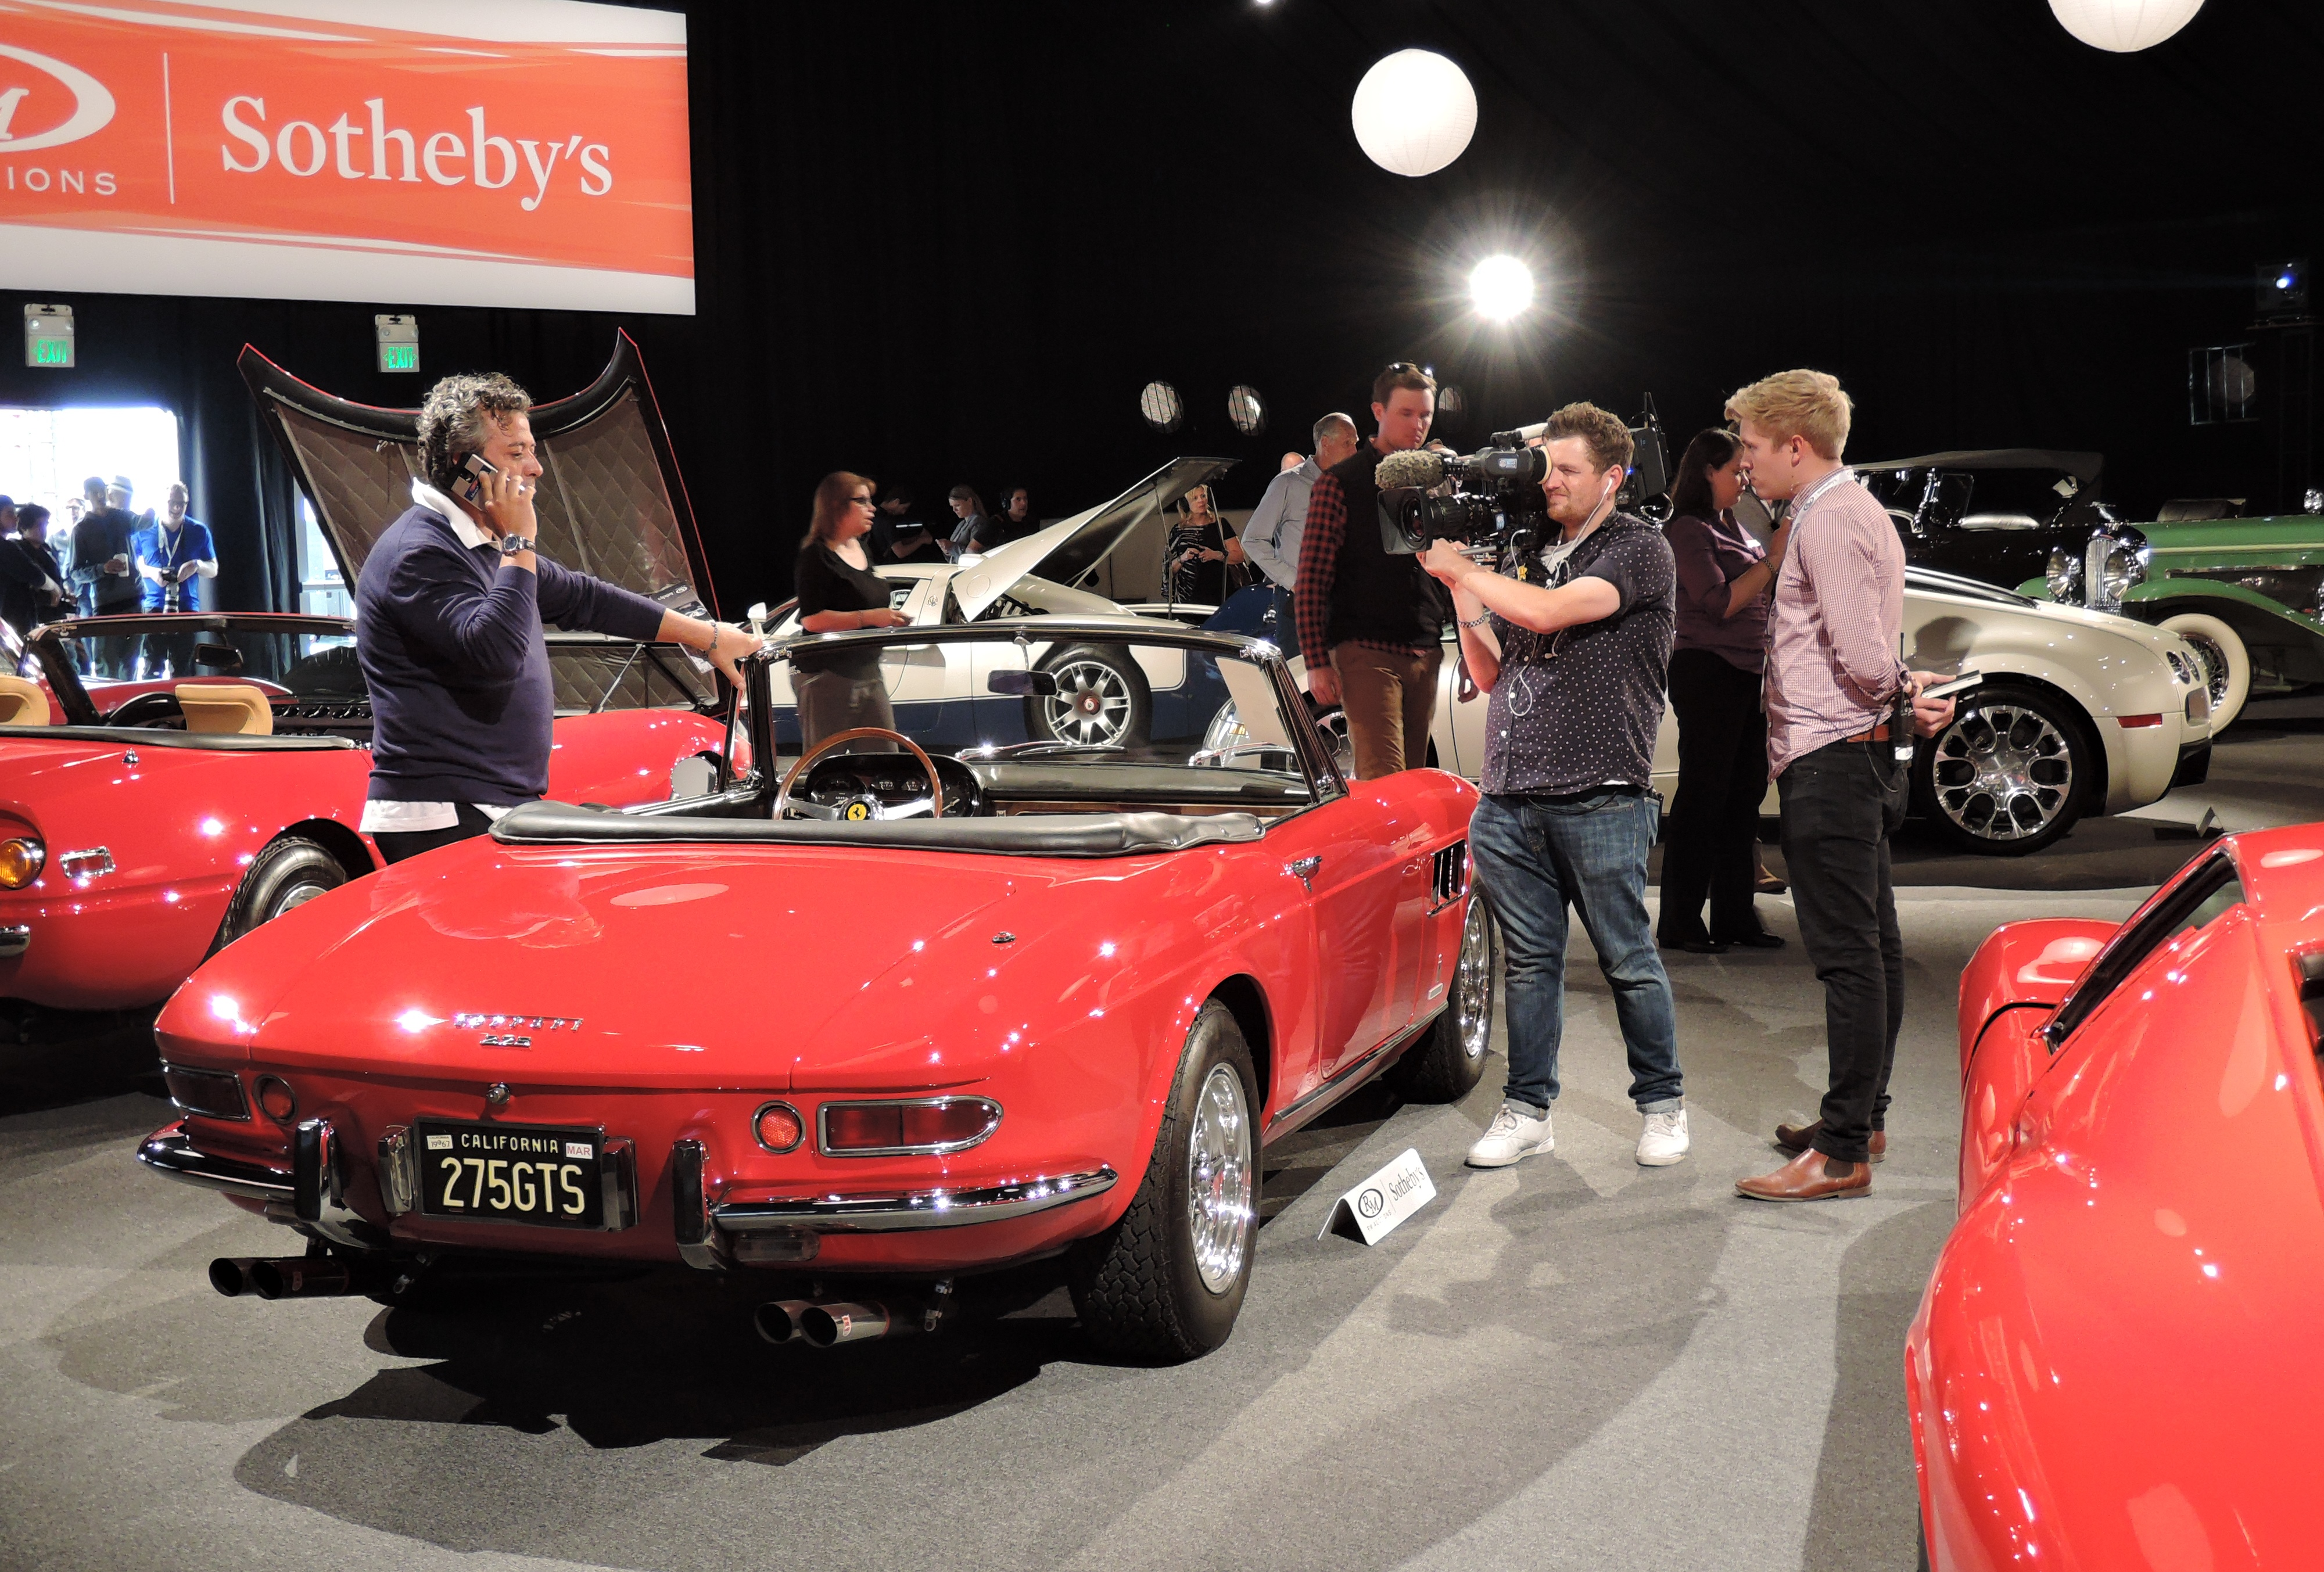 red/tan 1965 Ferrari 275 GTS - Monterey auctions RM Sotheby's